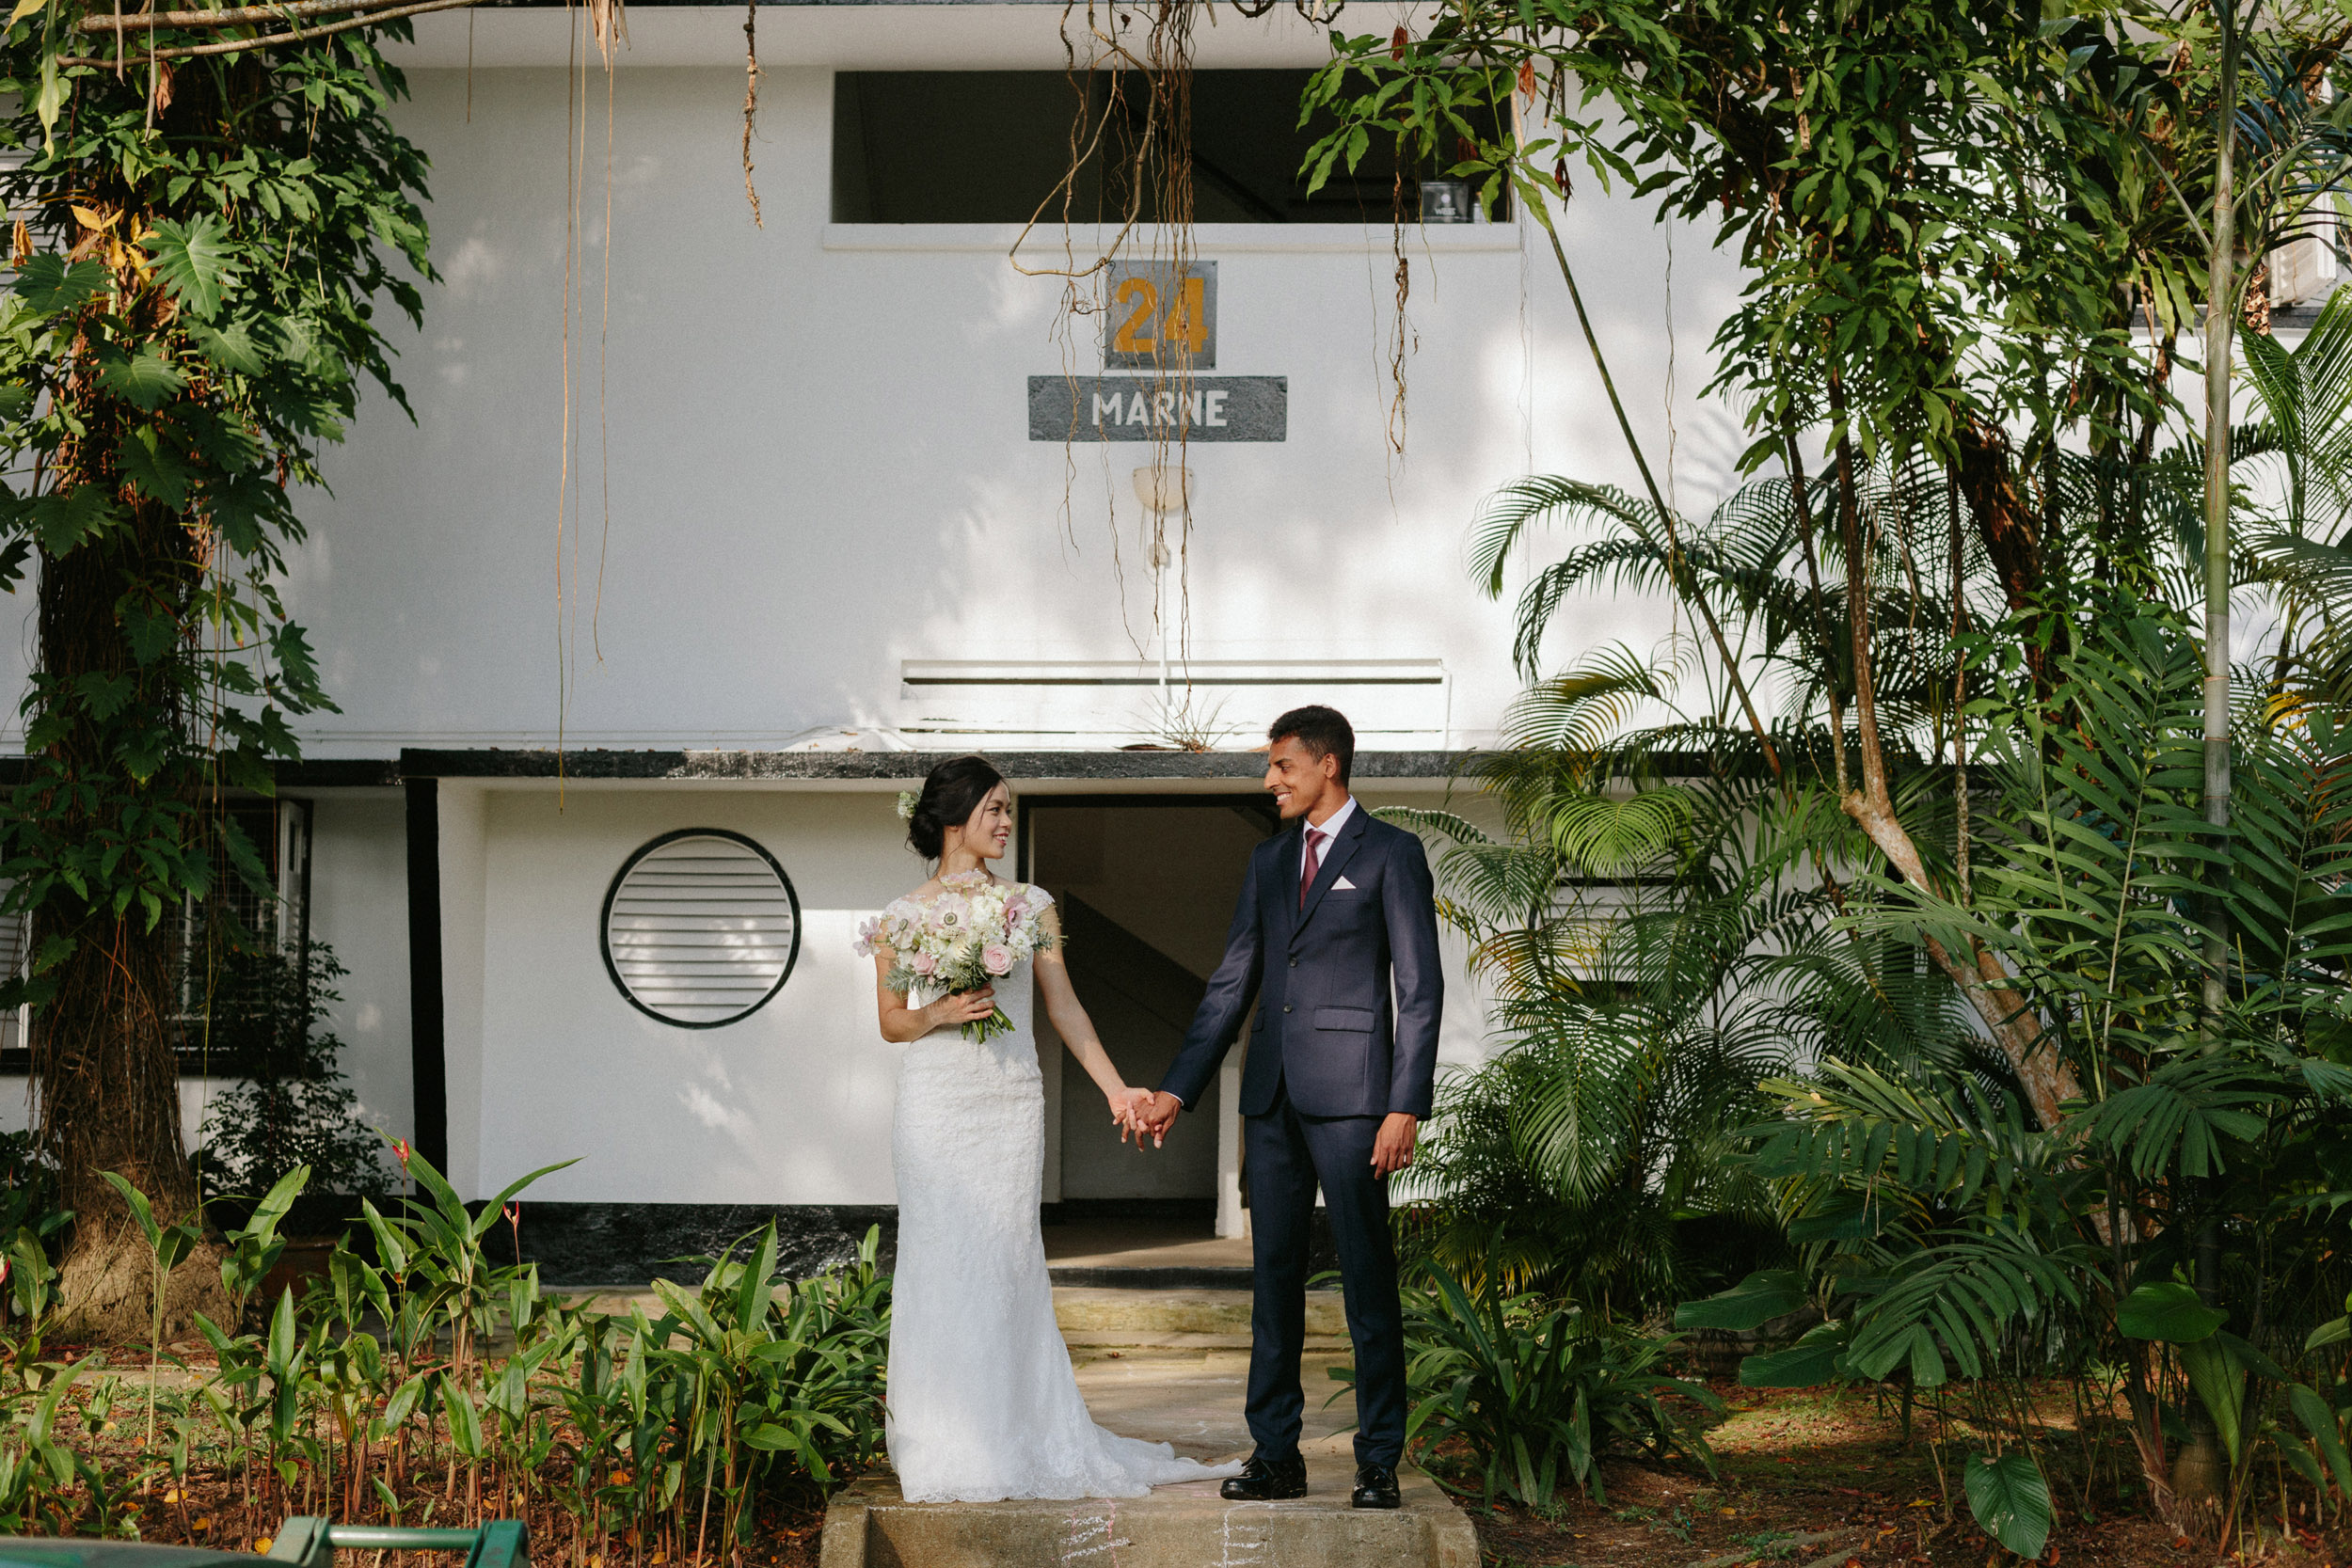 singapore-wedding-photographer-wemadethese-suriya-xinqi-11.jpg